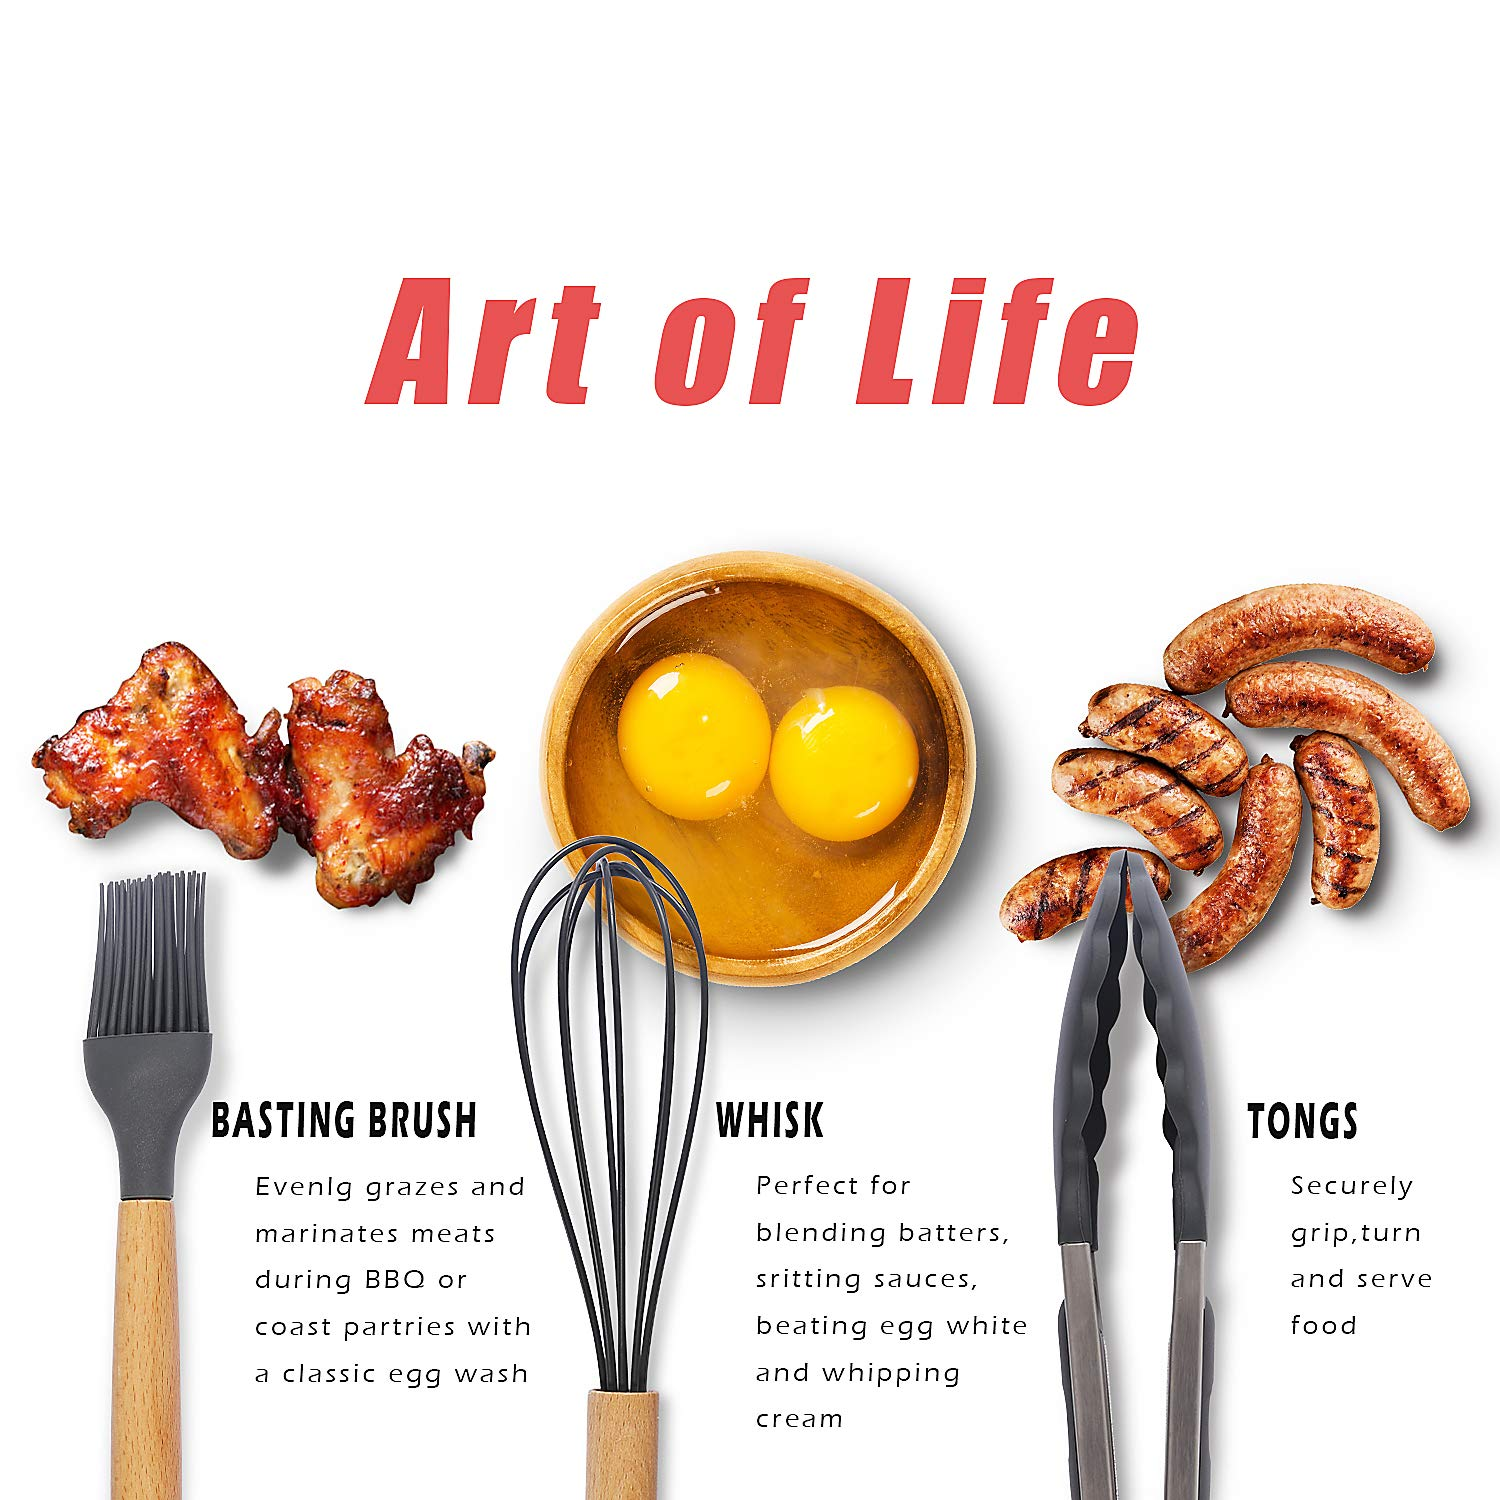 Kitchen Utensil Set - 11 Piece Cooking Utensils - Non-stick Silicone and Wooden Utensils. BPA Free, Non Toxic Turner Tongs Spatula Spoon Set. Best Chef Kitchen Tool Set Gray - Chef's Hand by Chef's Hand (Image #2)